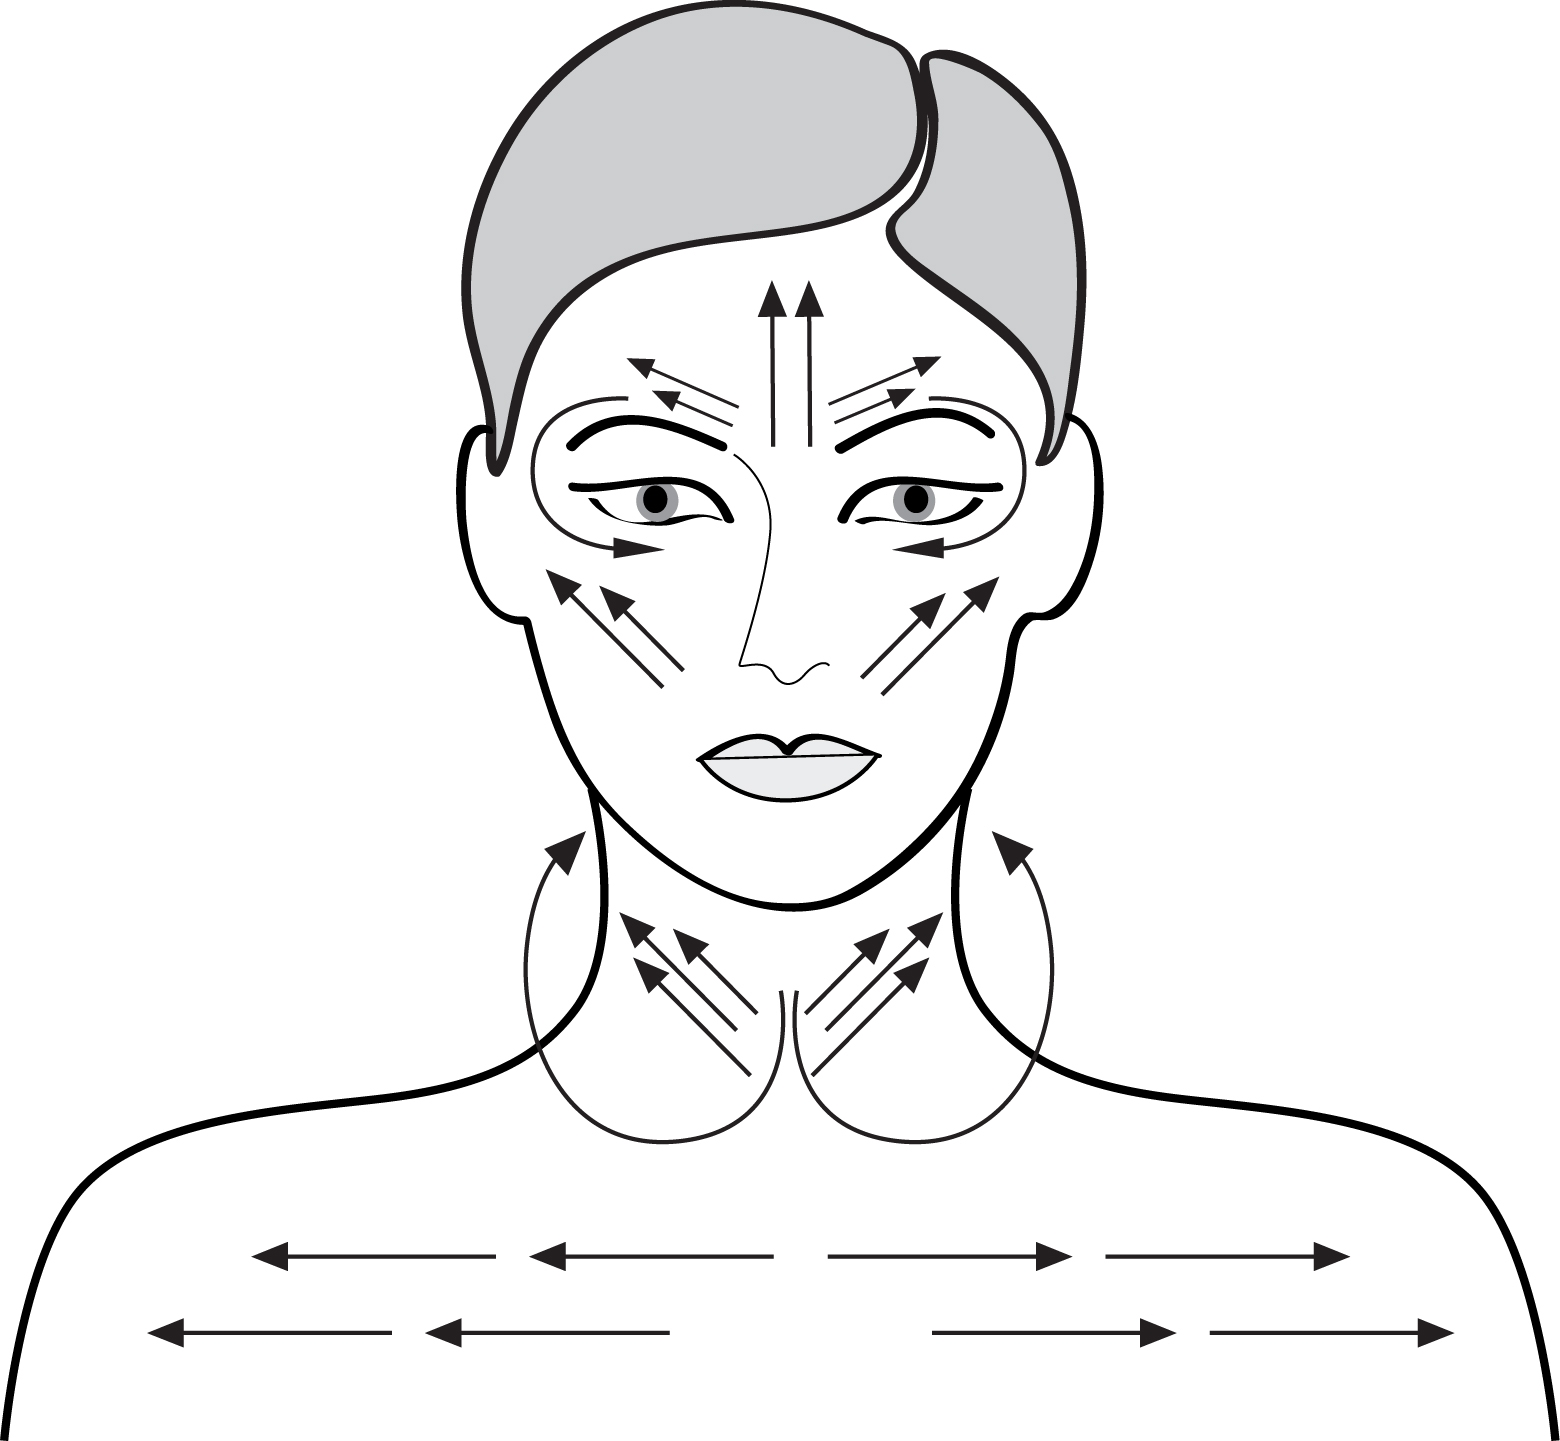 pressure points diagram massage xrm 110 wiring sweet relief how to help relieve chronic headaches naturally